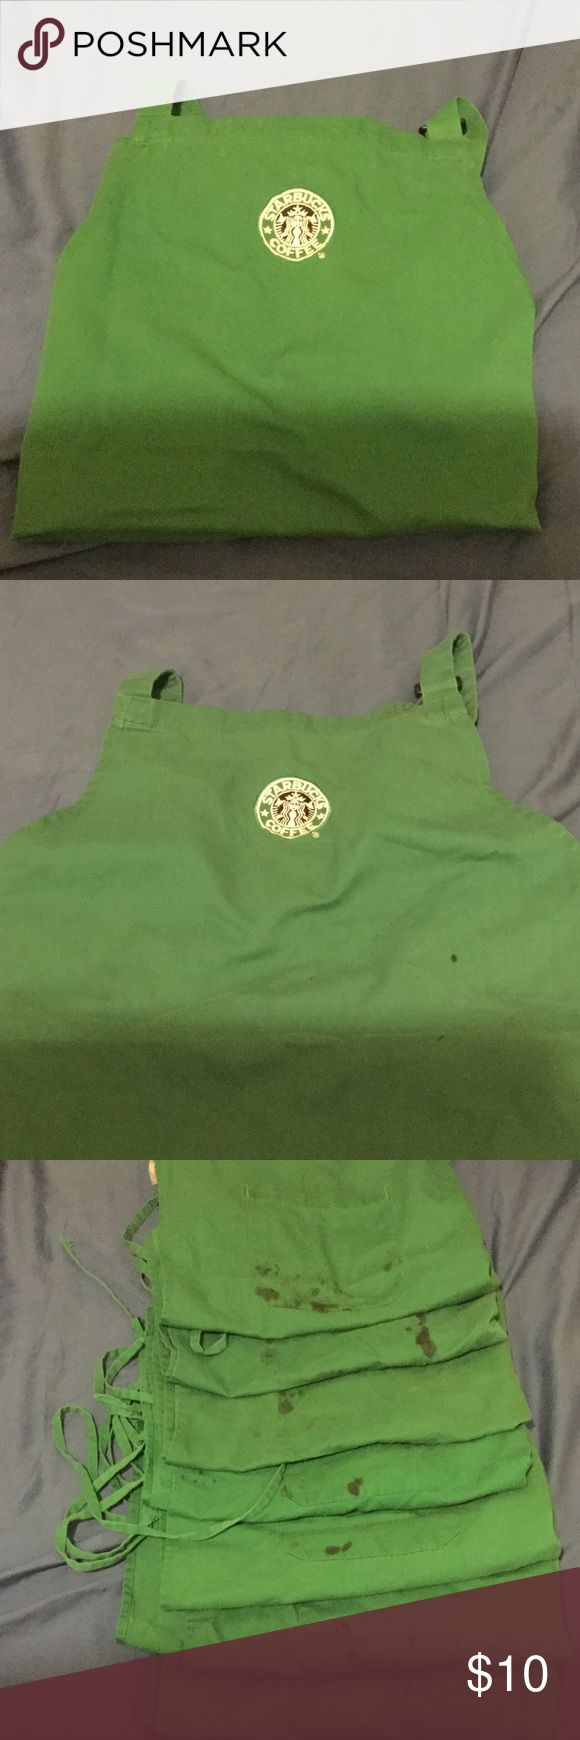 Starbucks Barista Apron - READ DESCRIPTION!!! Barista Starbucks Aprons; SOLD INDIVIDUALLY!!! Aprons all have pocket stains - true representation of a hard working barista! Price negotiable. Starbucks Coffee Company Other